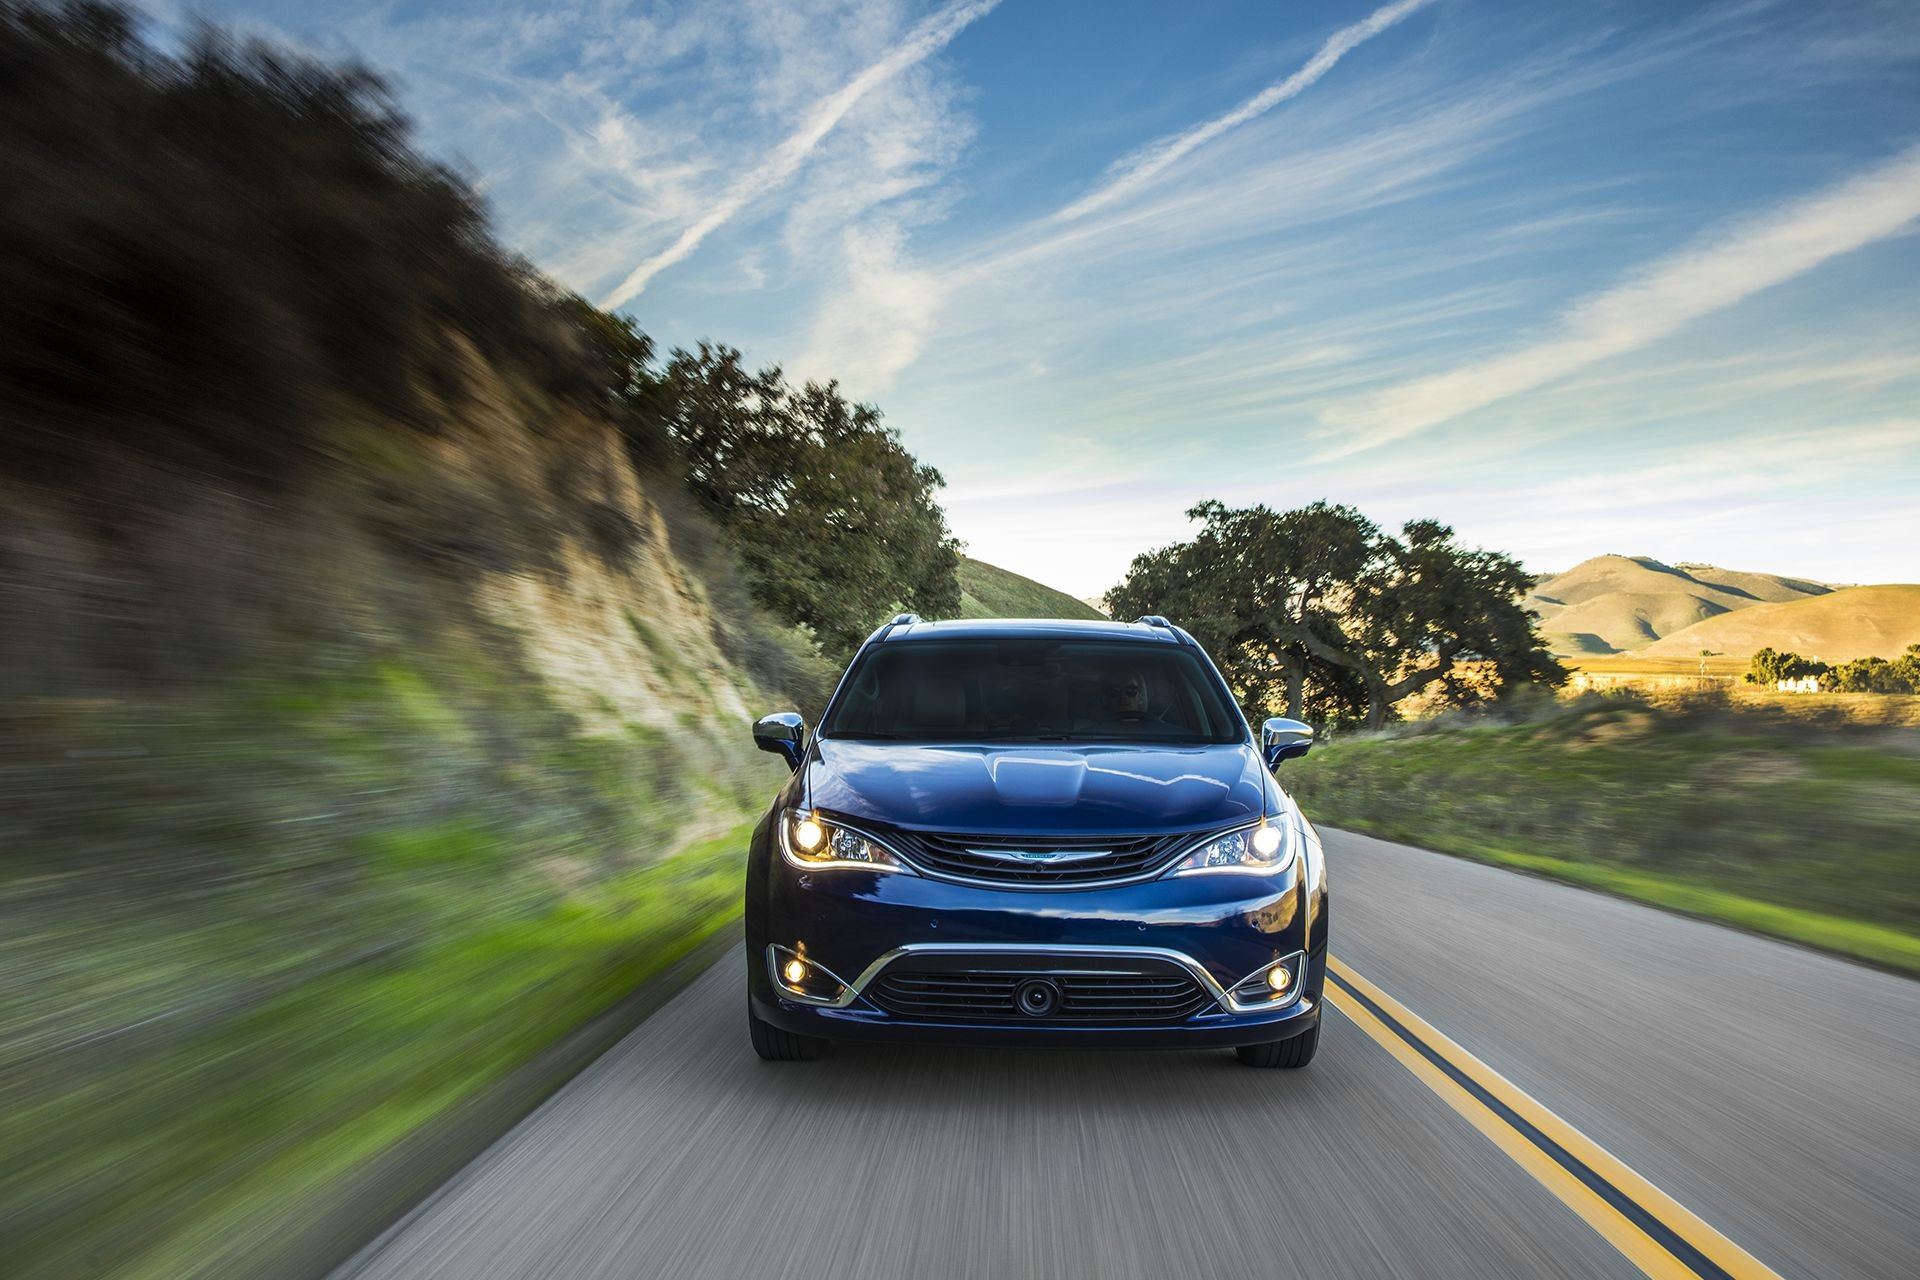 Chrysler Pacifica Hybrid 2018 Exterior Front-view Road Lifestyle